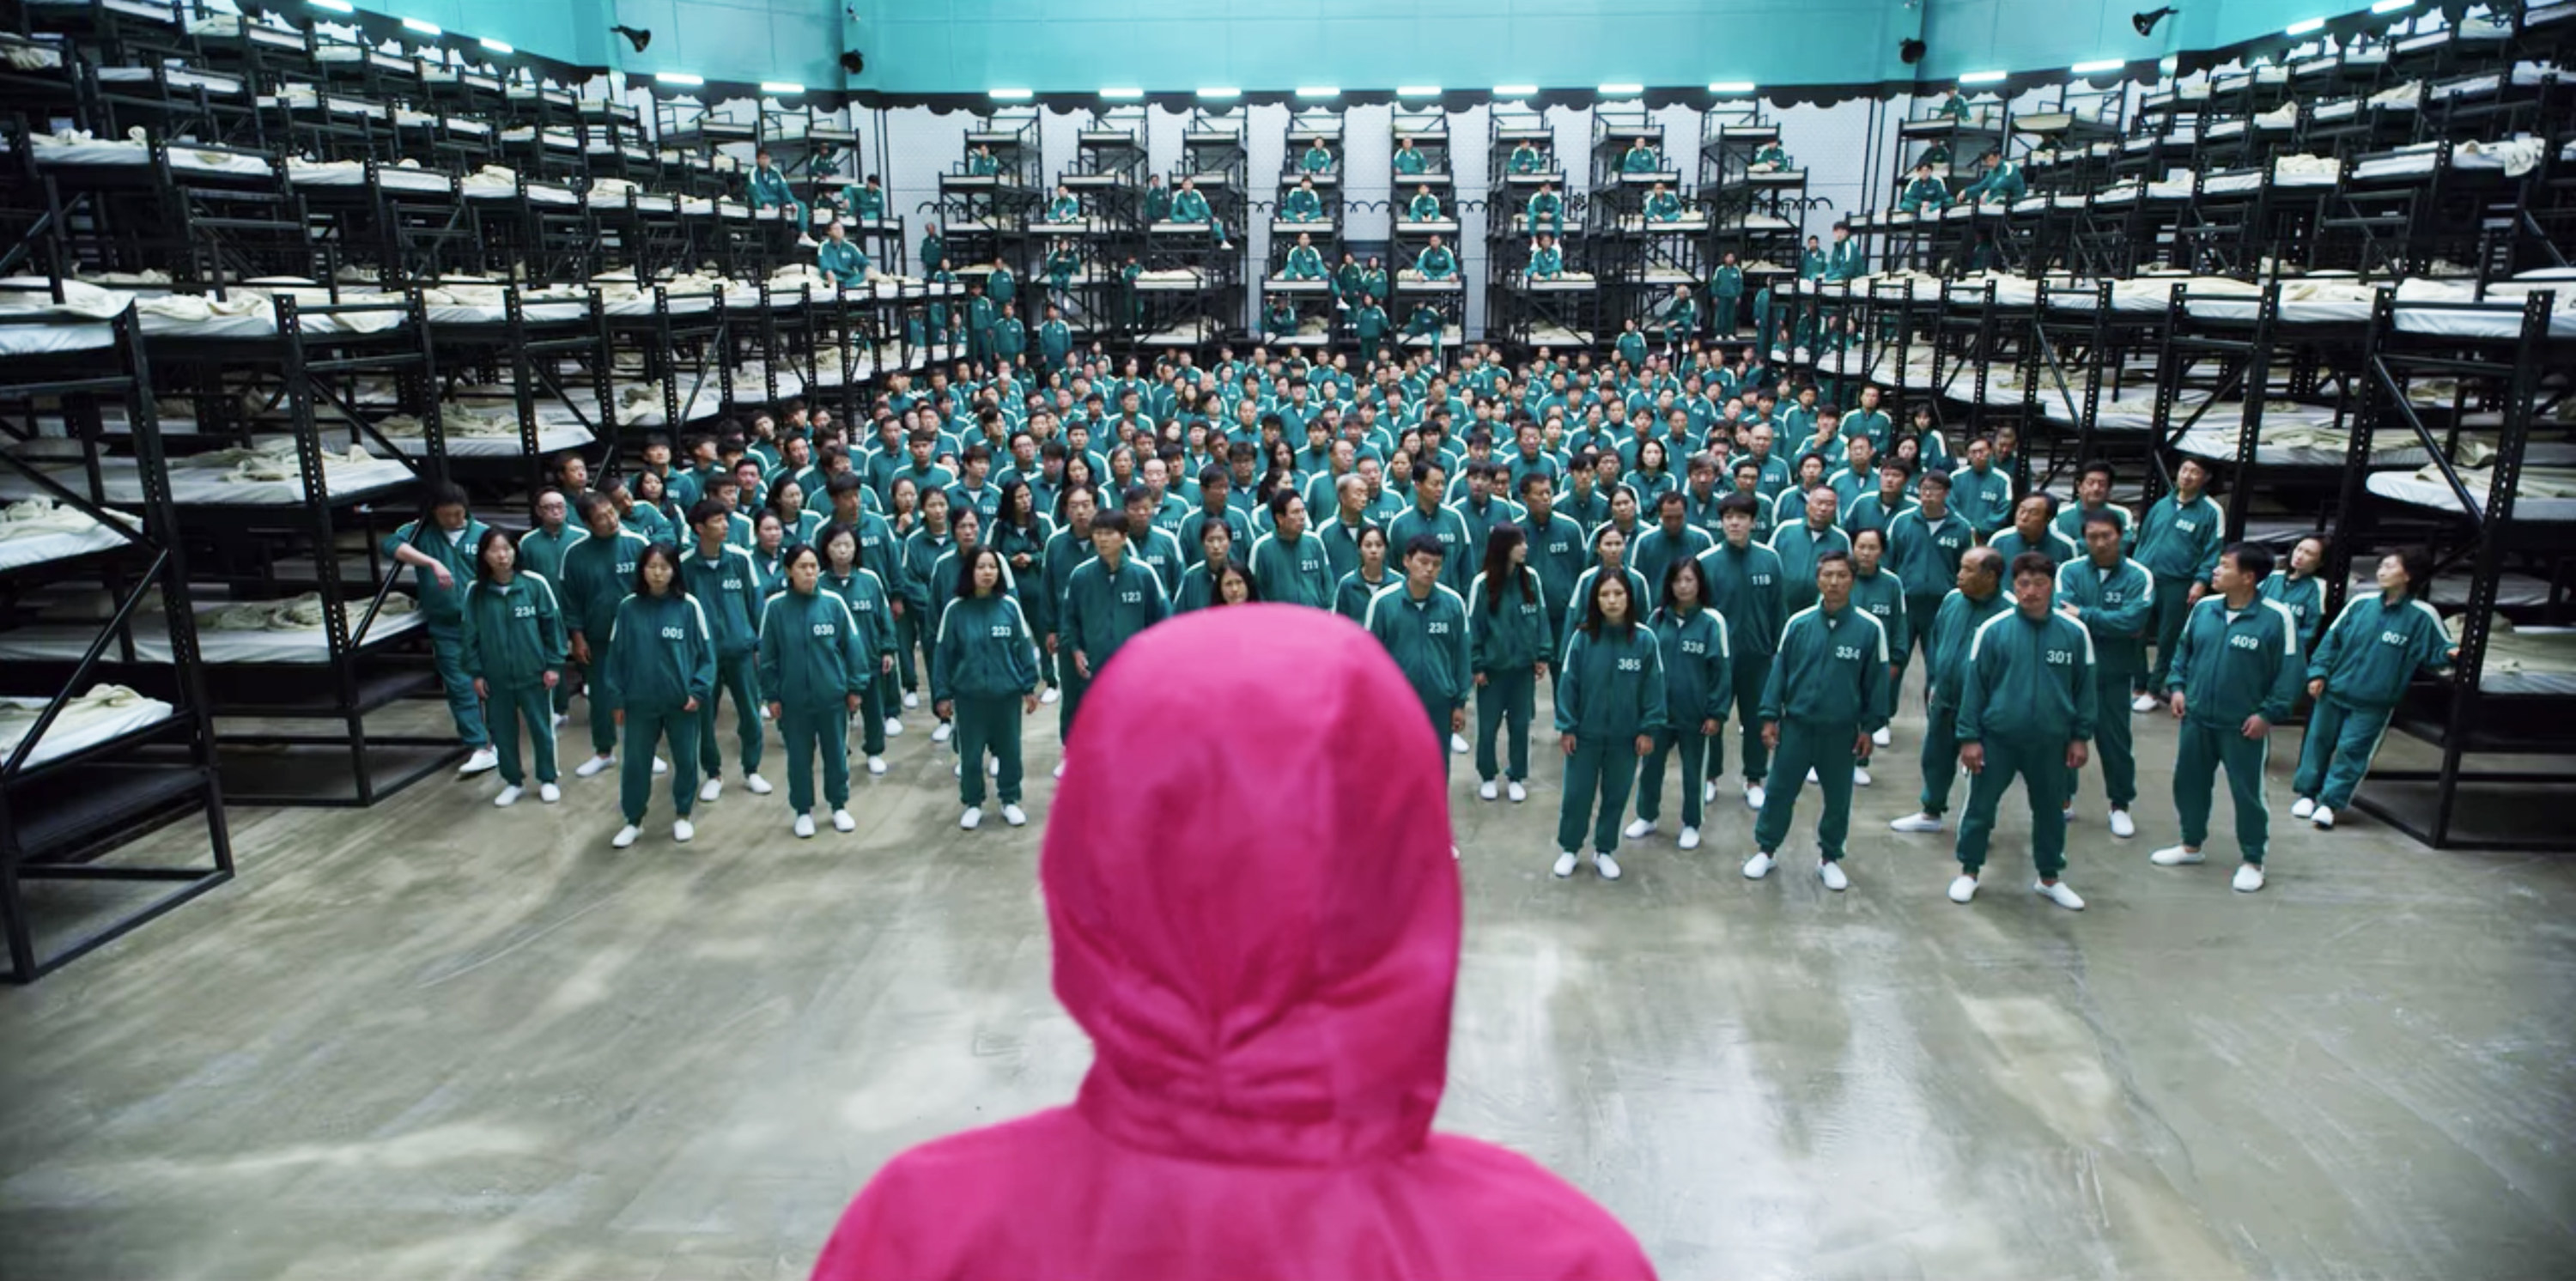 A Squid Game guard looks at the 456 contestants in the dorm room